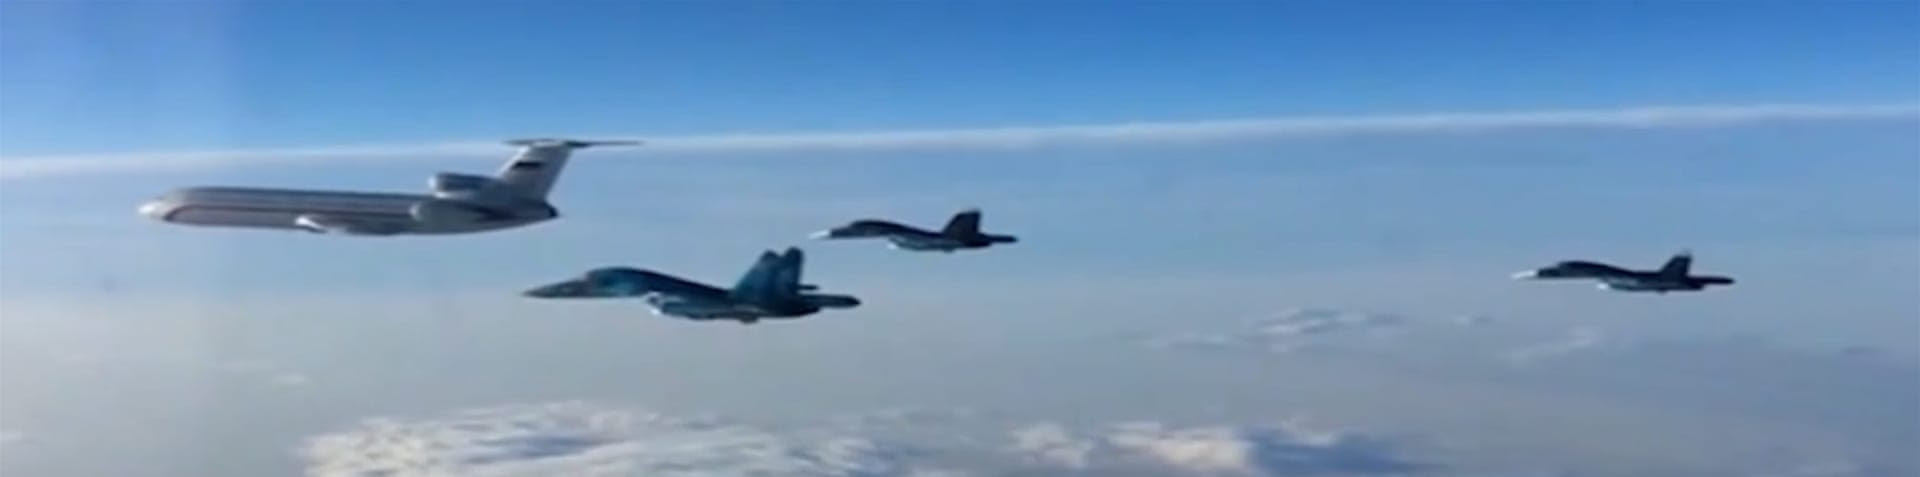 A handout frame grab taken from a video footage made available 15 March 2016 by the Russian Defence Ministry shows Russian TU-154 plane which transports engineering and technical personnel in the head of a group of Russian SU-34 multidimensional bombers in flight from the Syrian Hmeymim airbase outside Latakia to Russia.   EPA/RUSSIAN DEFENCE MINISTRY / HANDOUT  [EPA]